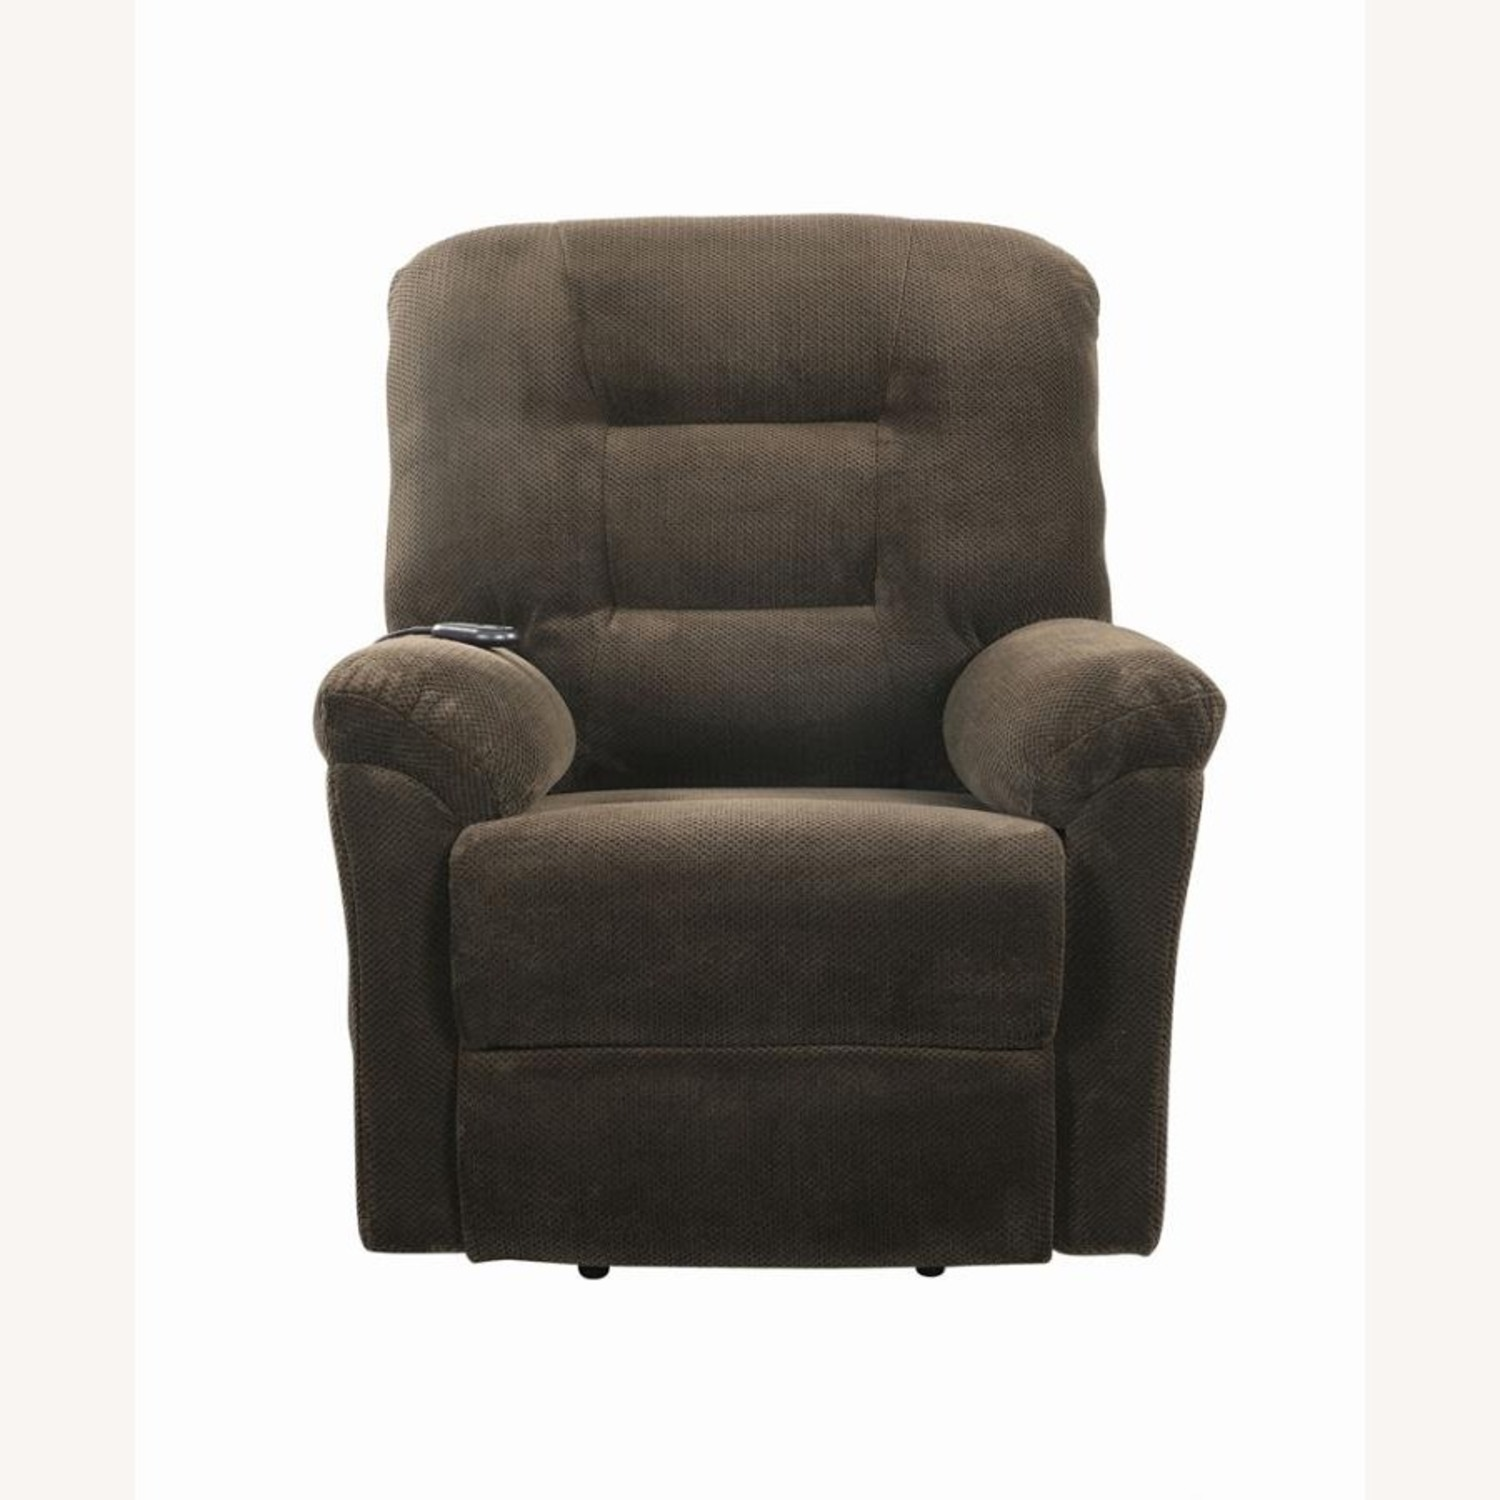 Power Lift Recliner In Chocolate Chenille Fabric - image-3